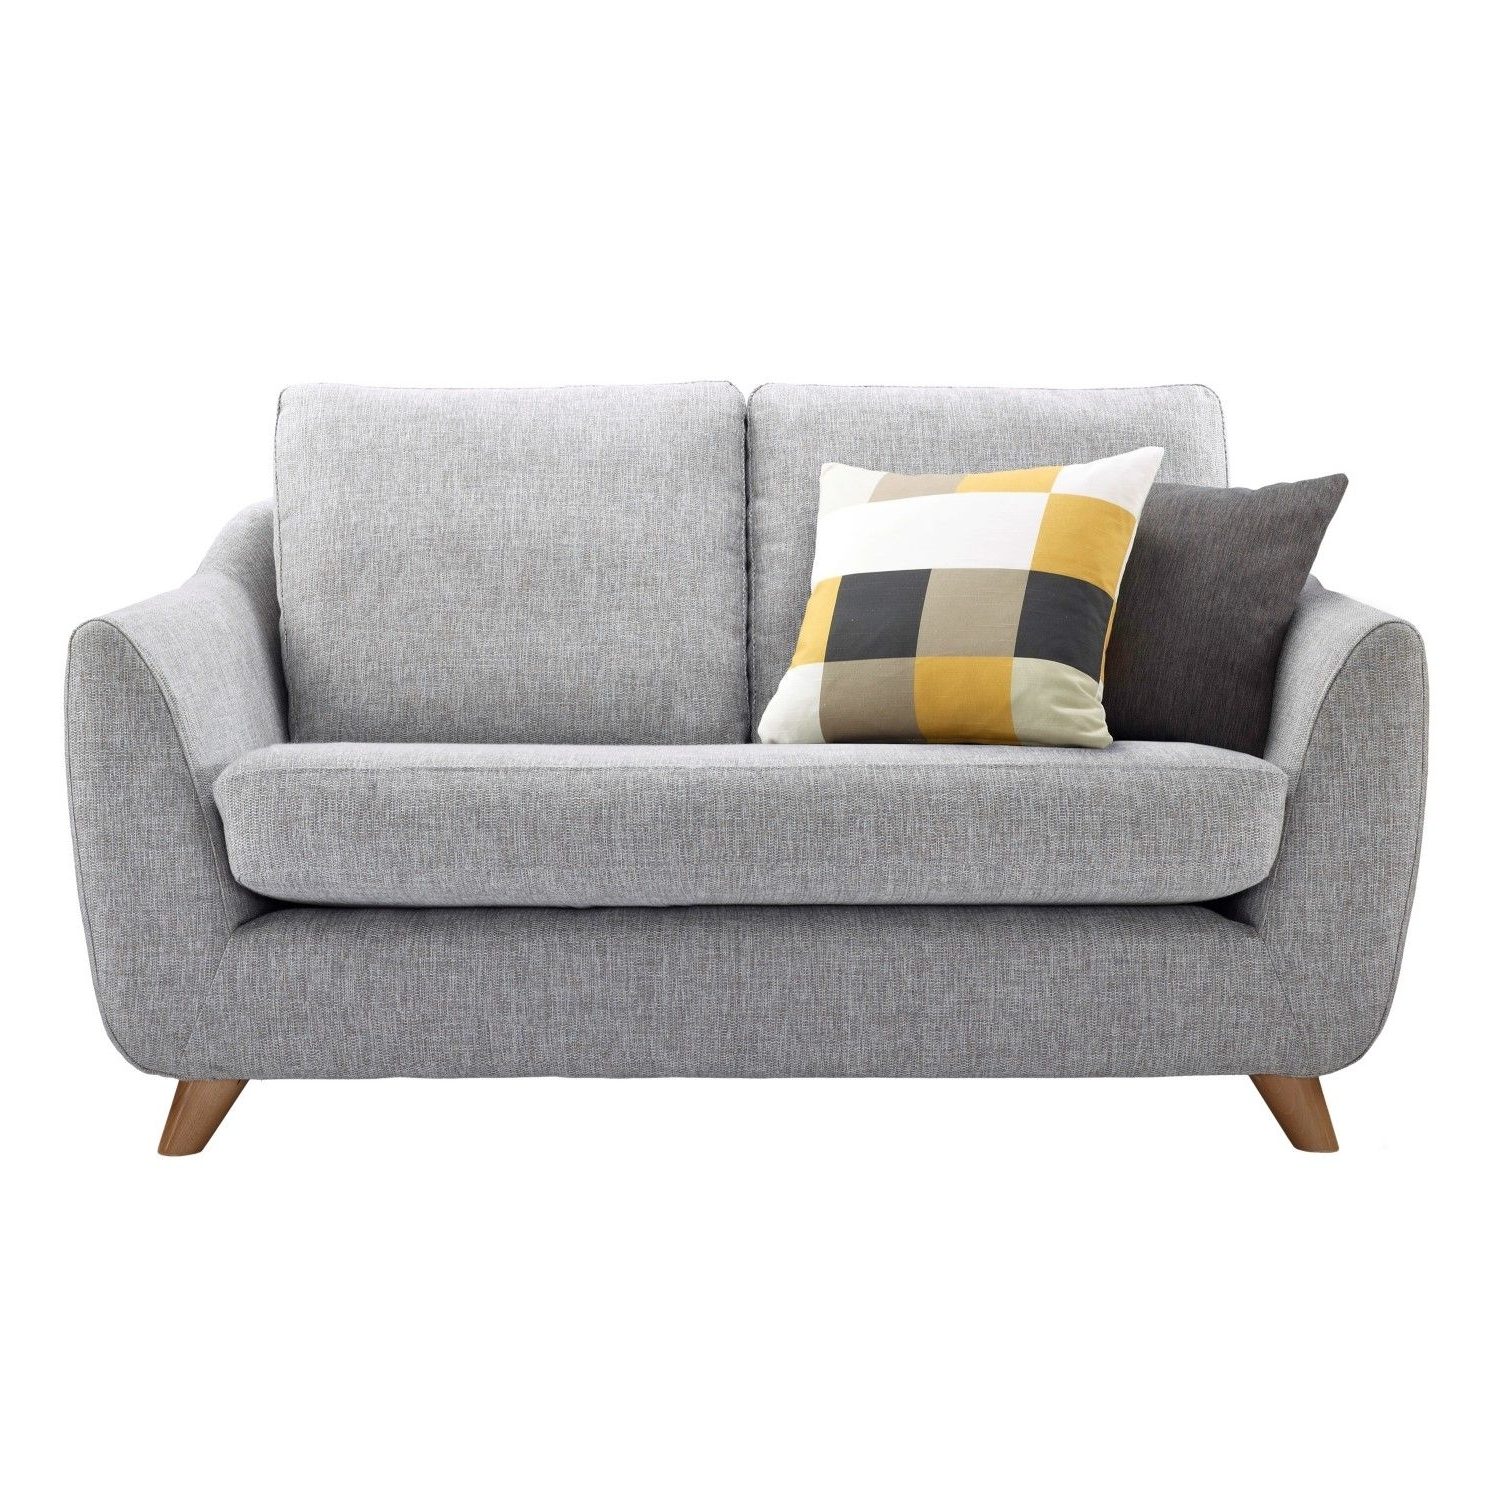 Cheap Small Sofa Decoration Intended For Sofas And Loveseats (View 6 of 15)